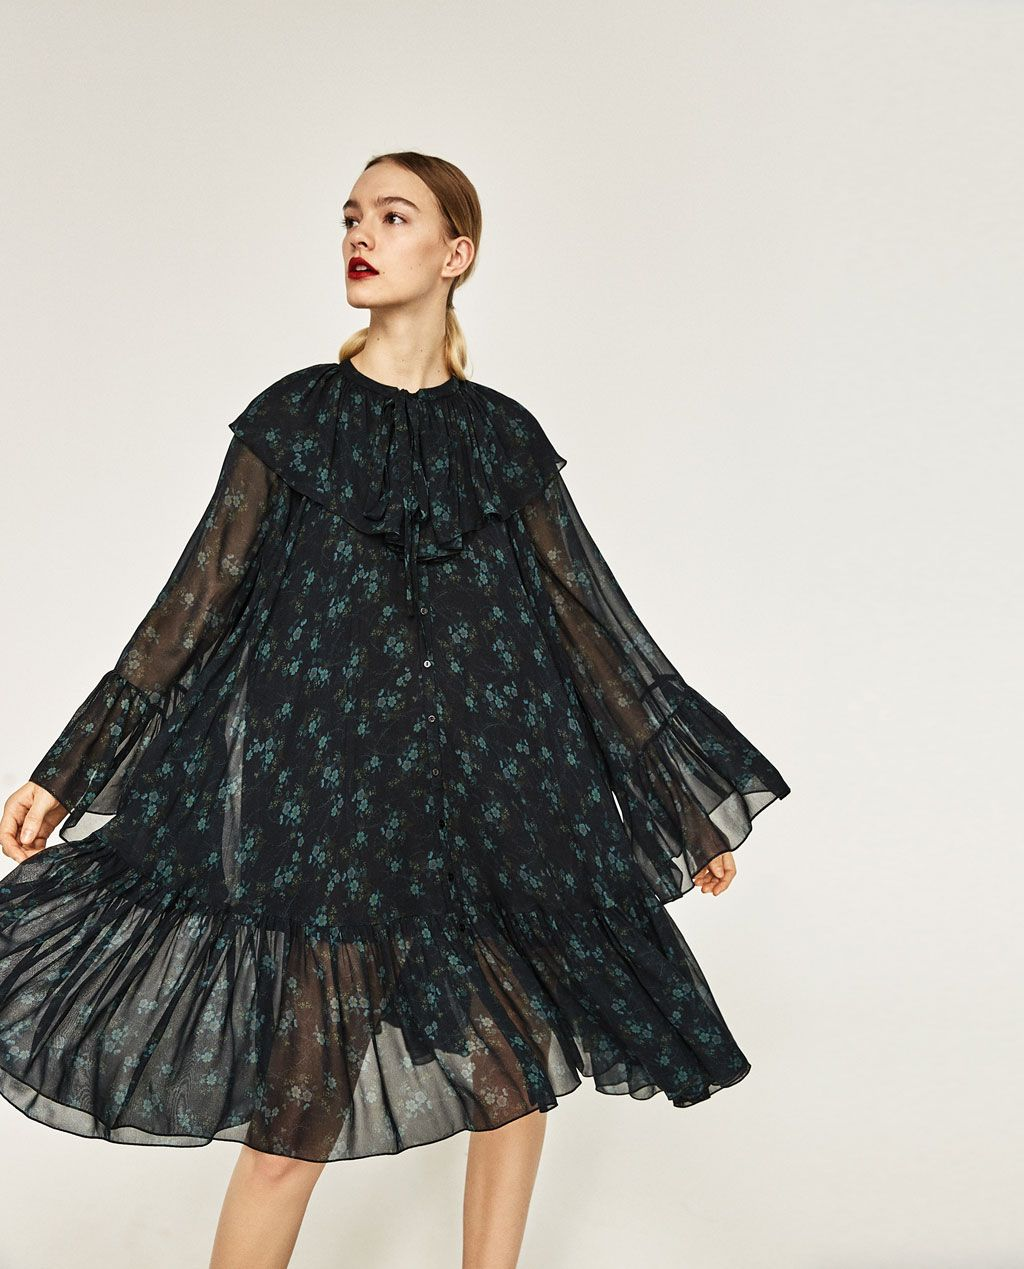 b56a1763b78 Image 2 of SHORT STUDIO FLORAL DRESS WITH FRILLS from Zara ...